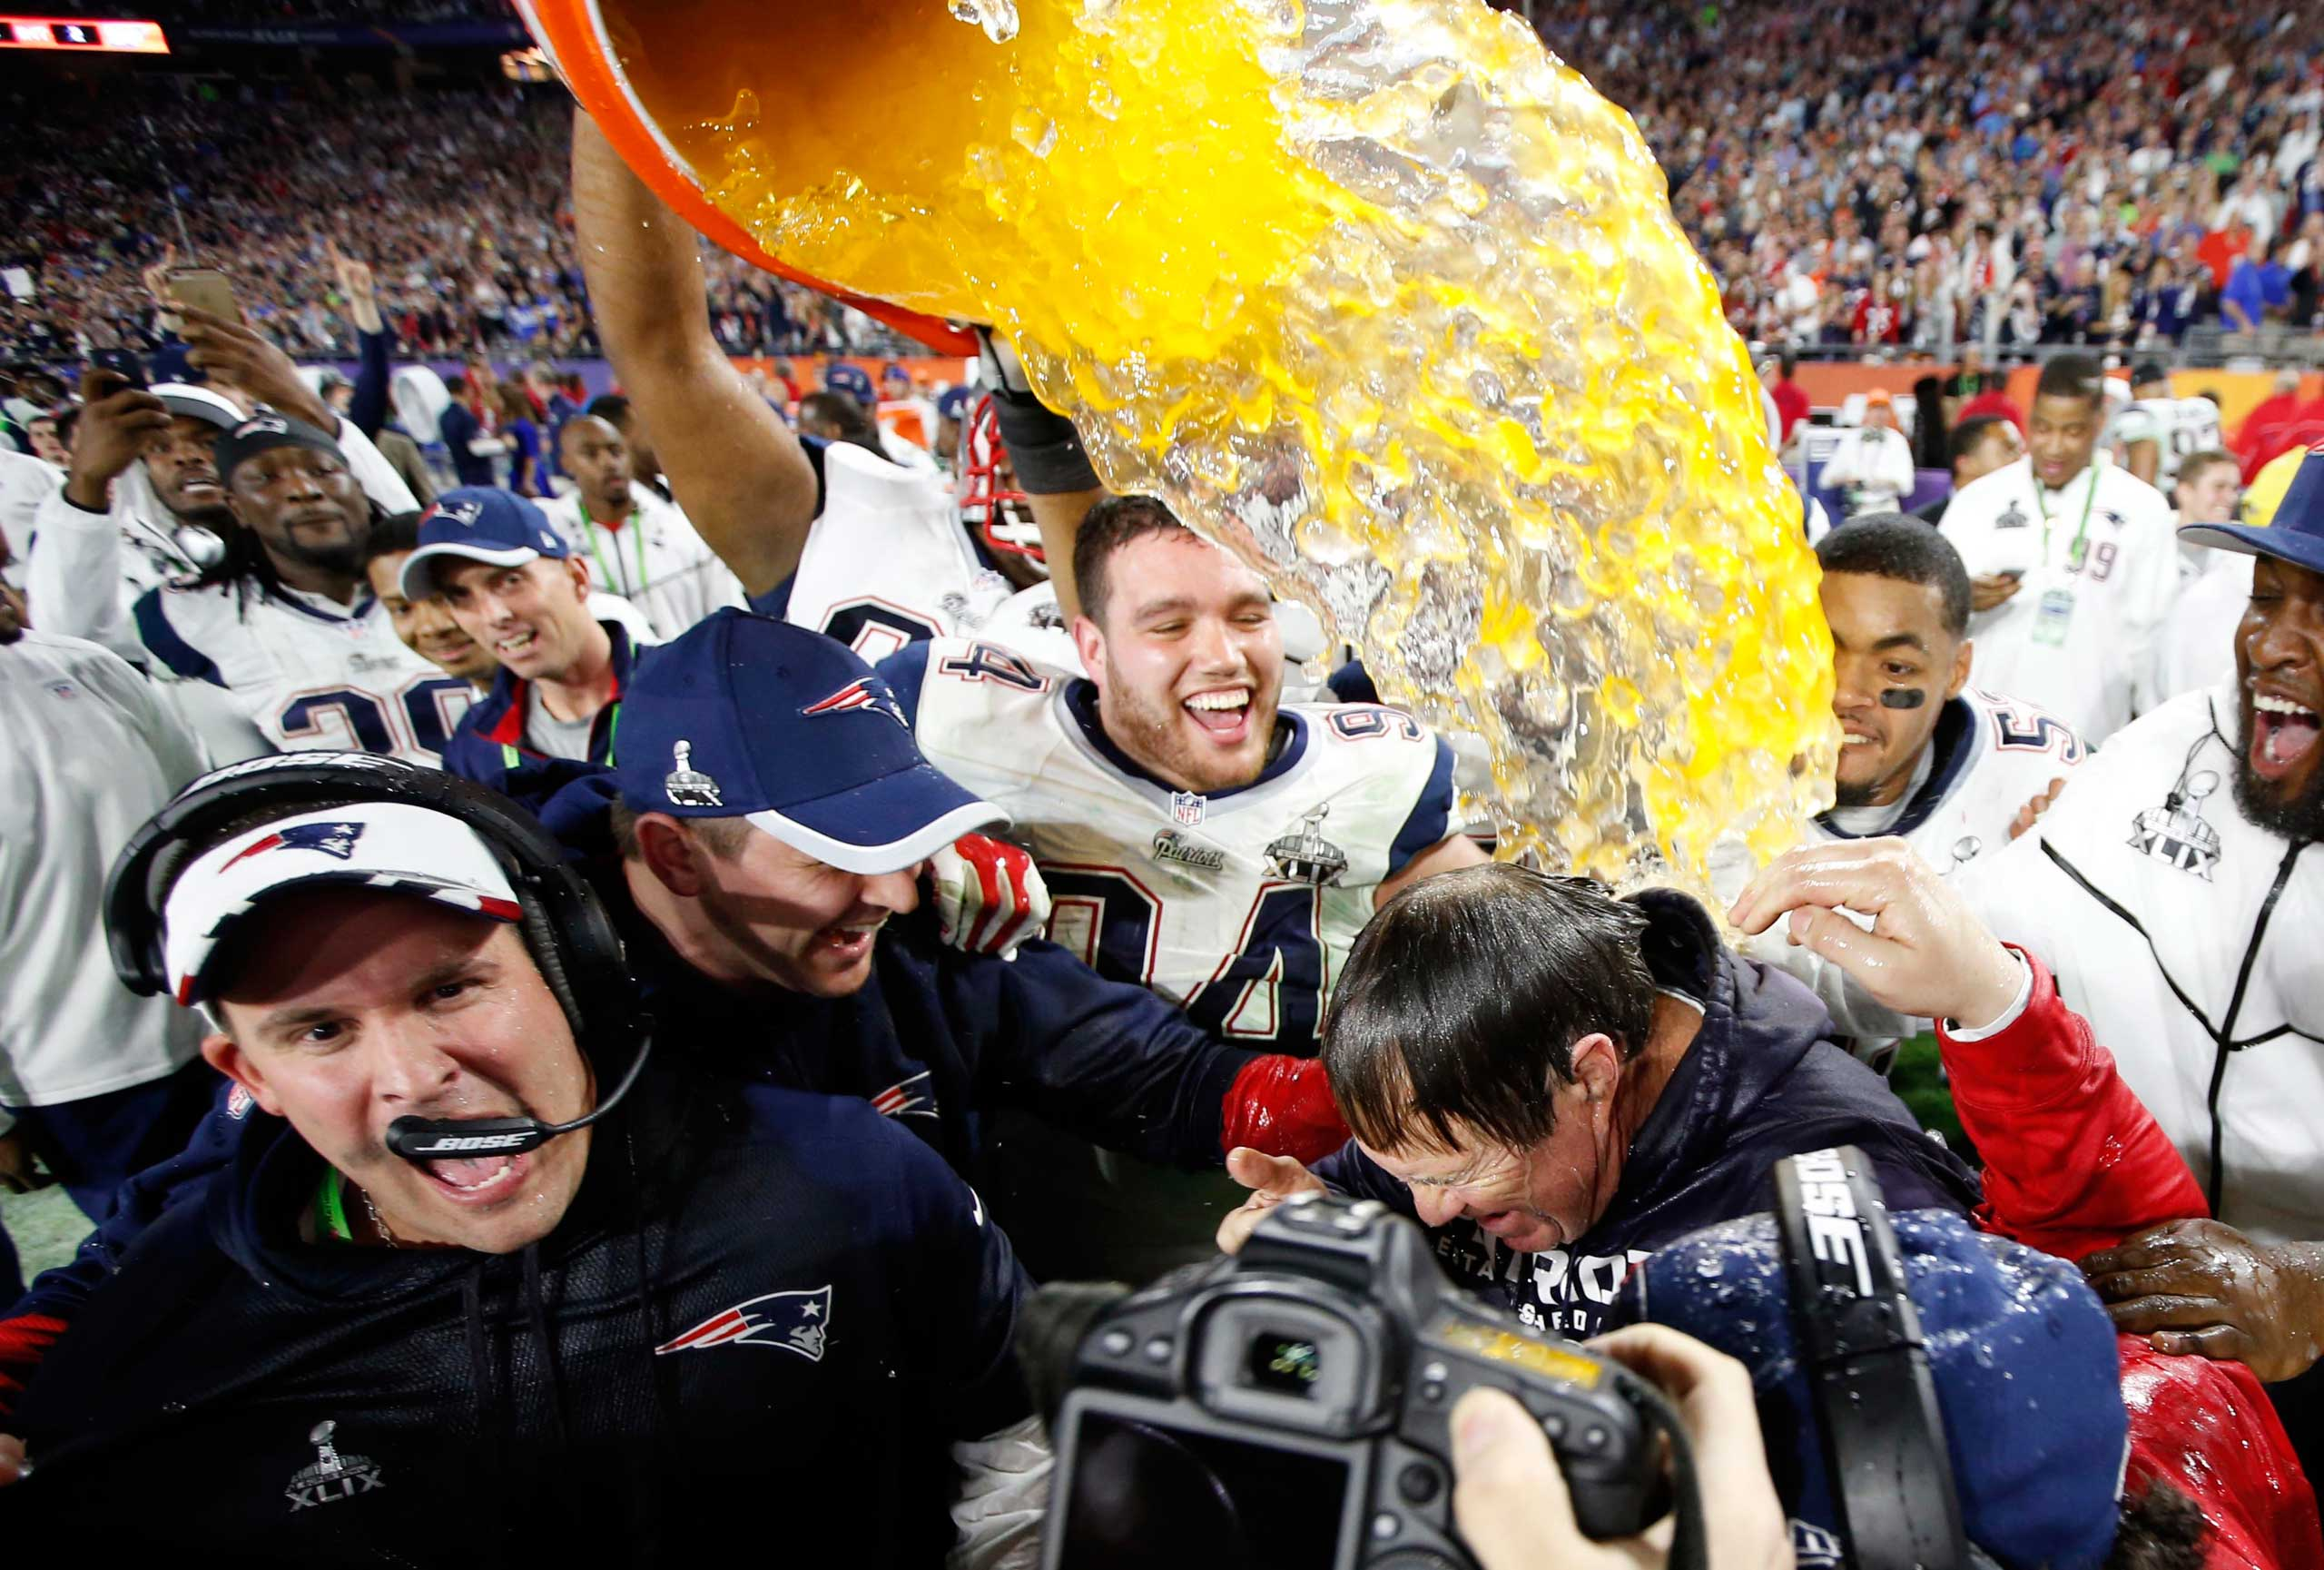 New England Patriots head coach Bill Belichick is dunked with Gatorade after defeating the Seattle Seahawks in Super Bowl XLIX in Glendale, Ariz. on Feb. 1, 2015.